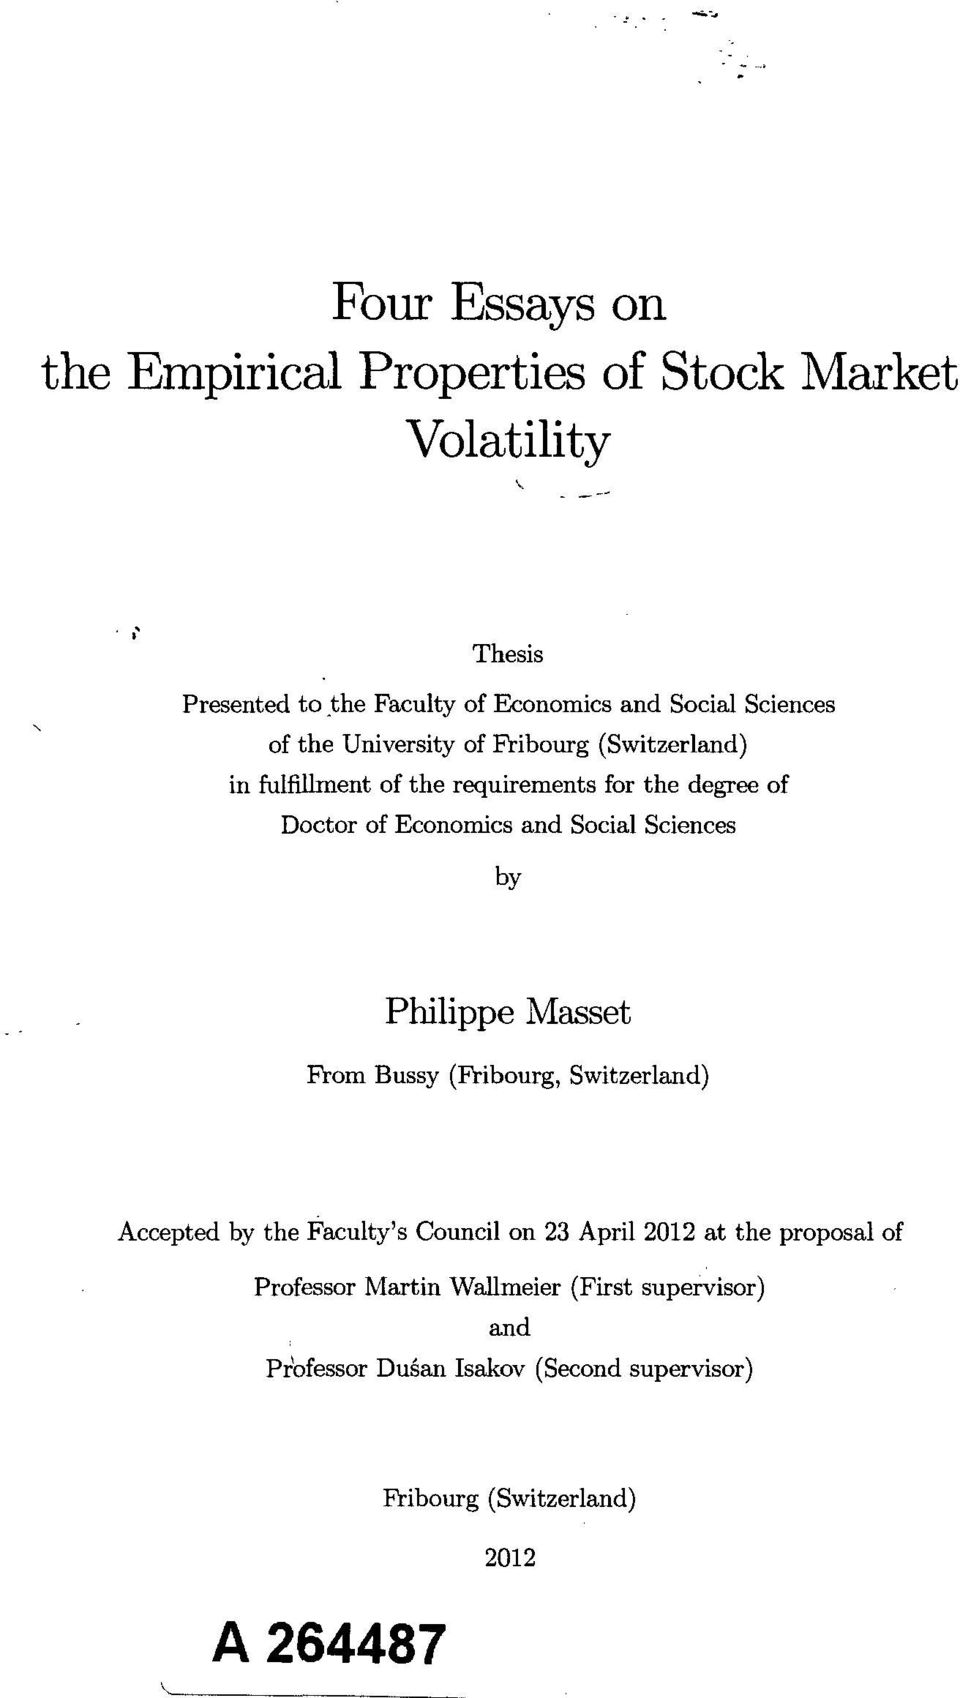 Four Essays On The Empirical Properties Of Stock Market Volatility  Pdf Social Sciences By Philippe Masset From Bussy Fribourg Switzerland  Accepted By The Facultys